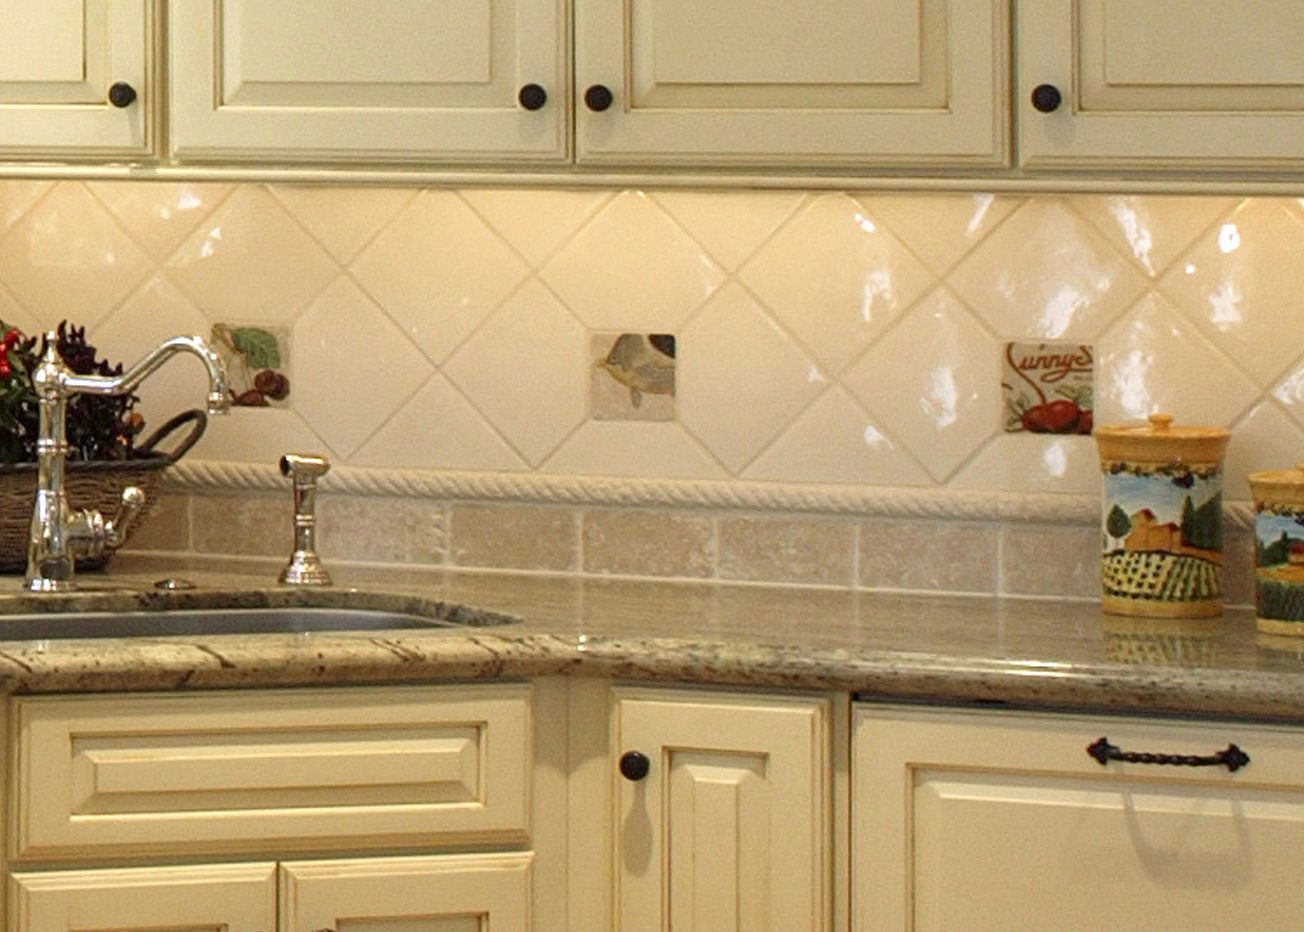 Cool Backsplash Ideas For Kitchen With Stunning Pattern Kitchen Backsplash Designs Kitchen Backsplash Tile Designs Kitchen Tiles Backsplash